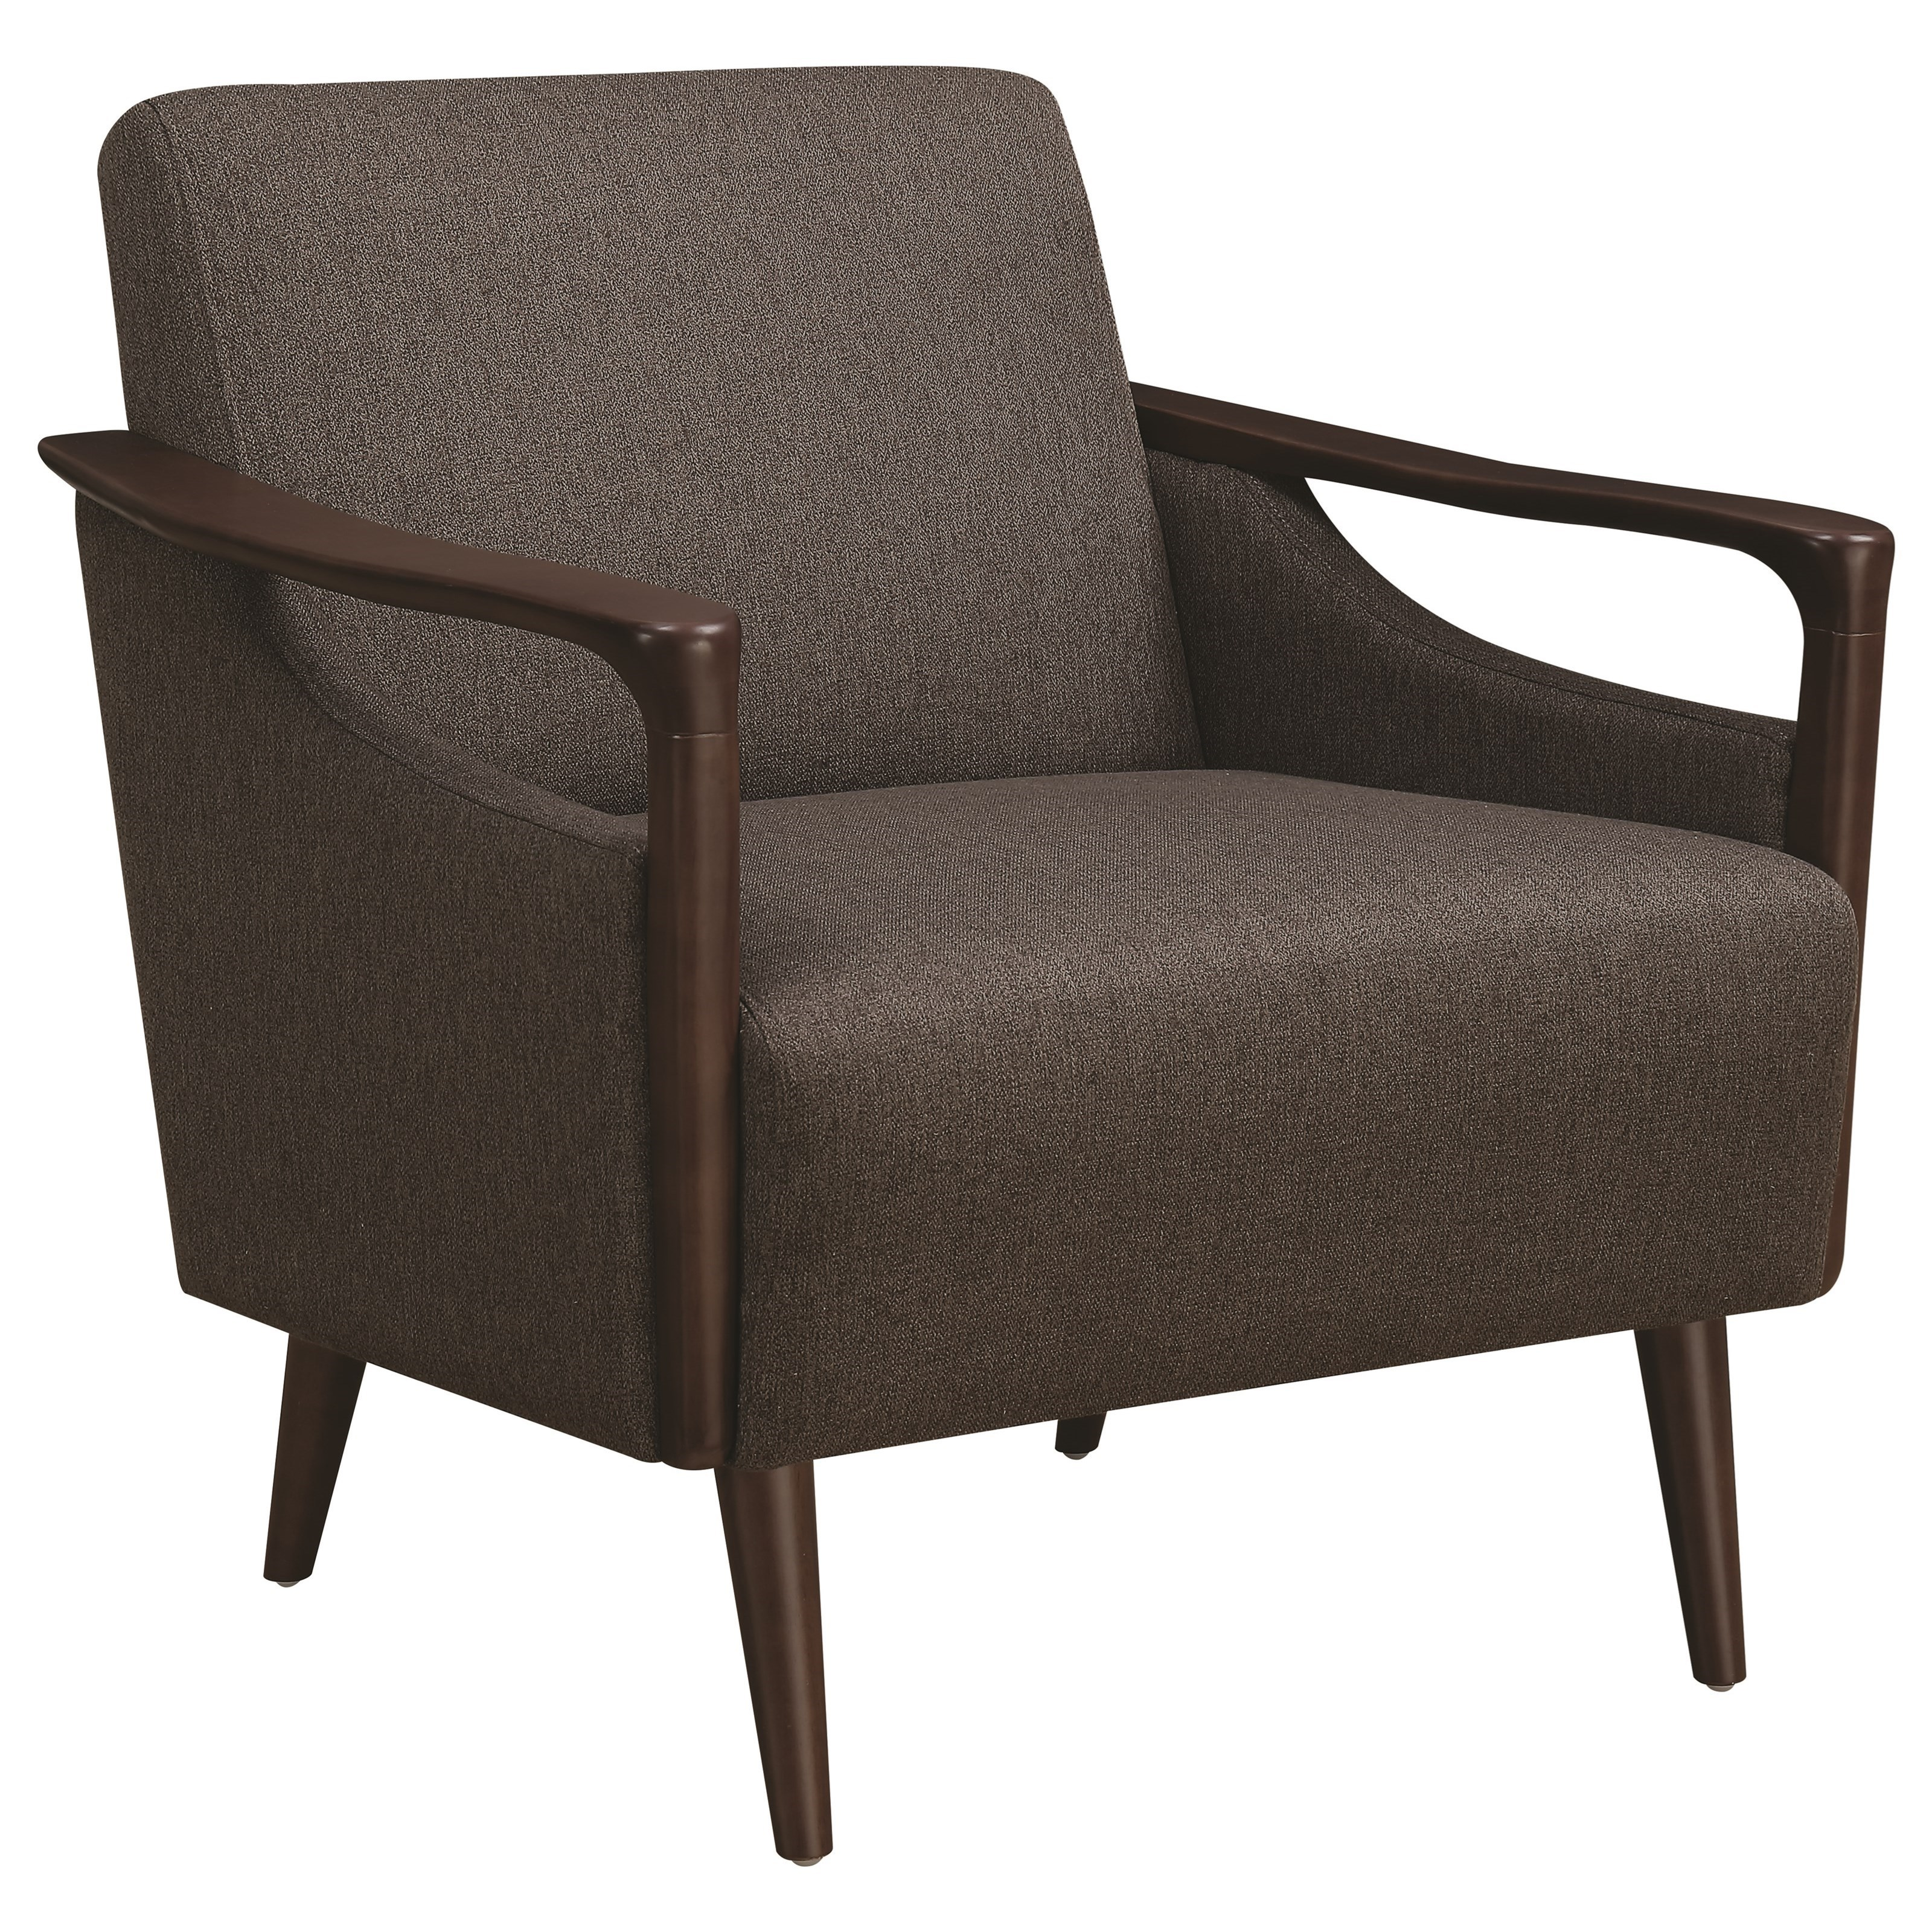 90404 Accent Chair by Coaster at Value City Furniture